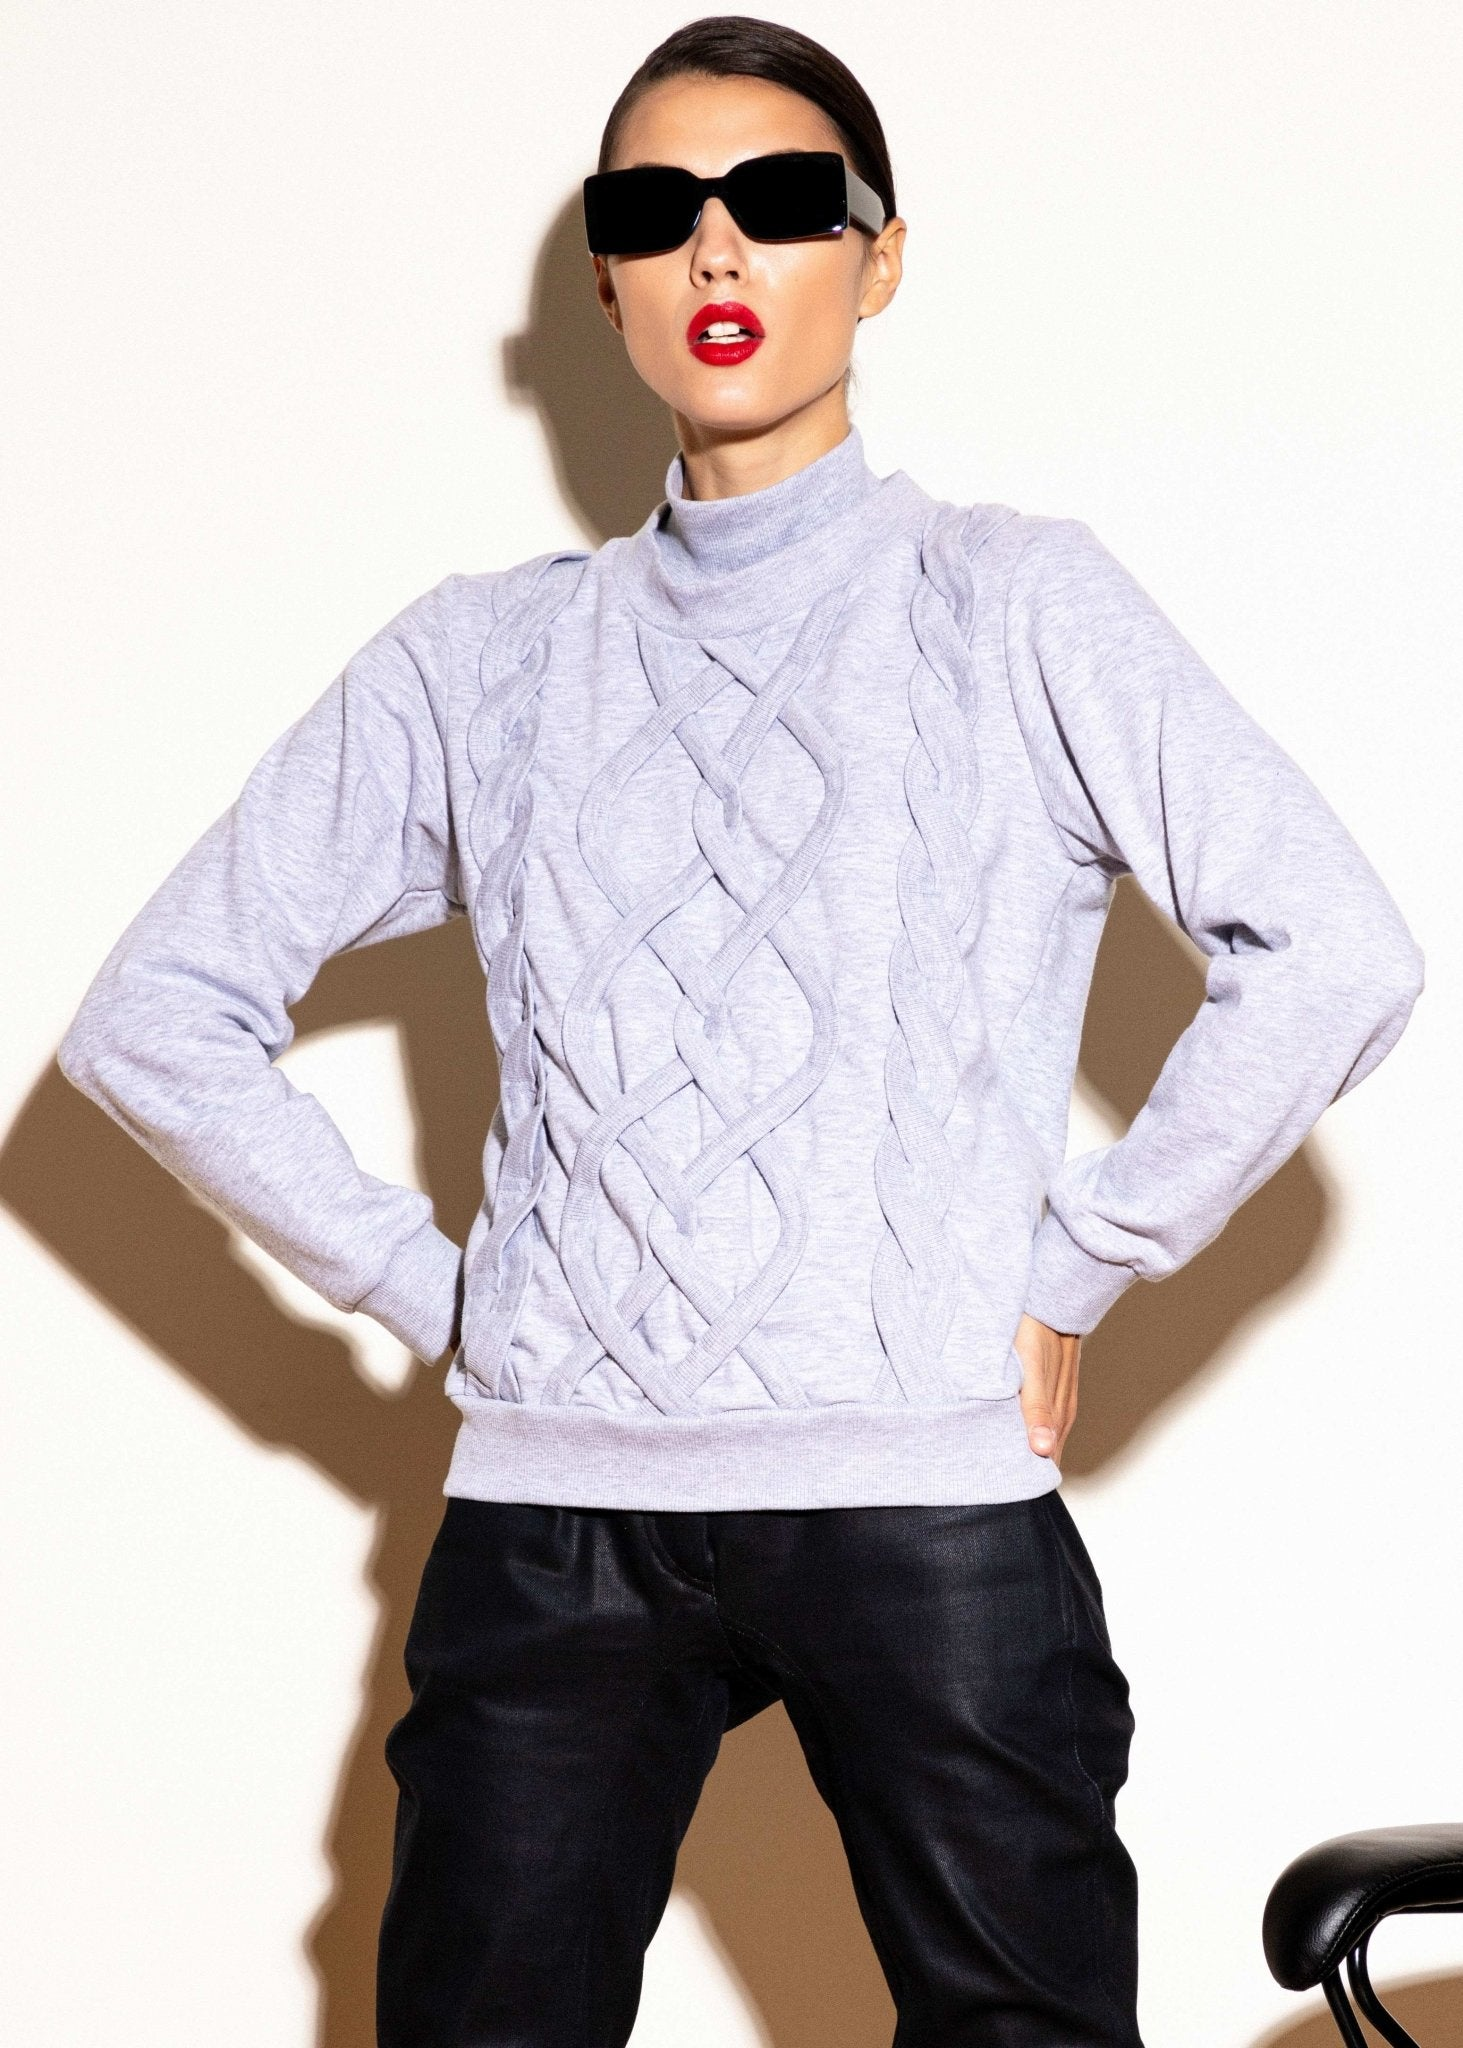 Fake Knitwear Sweatshirt - The Clothing LoungeTalented